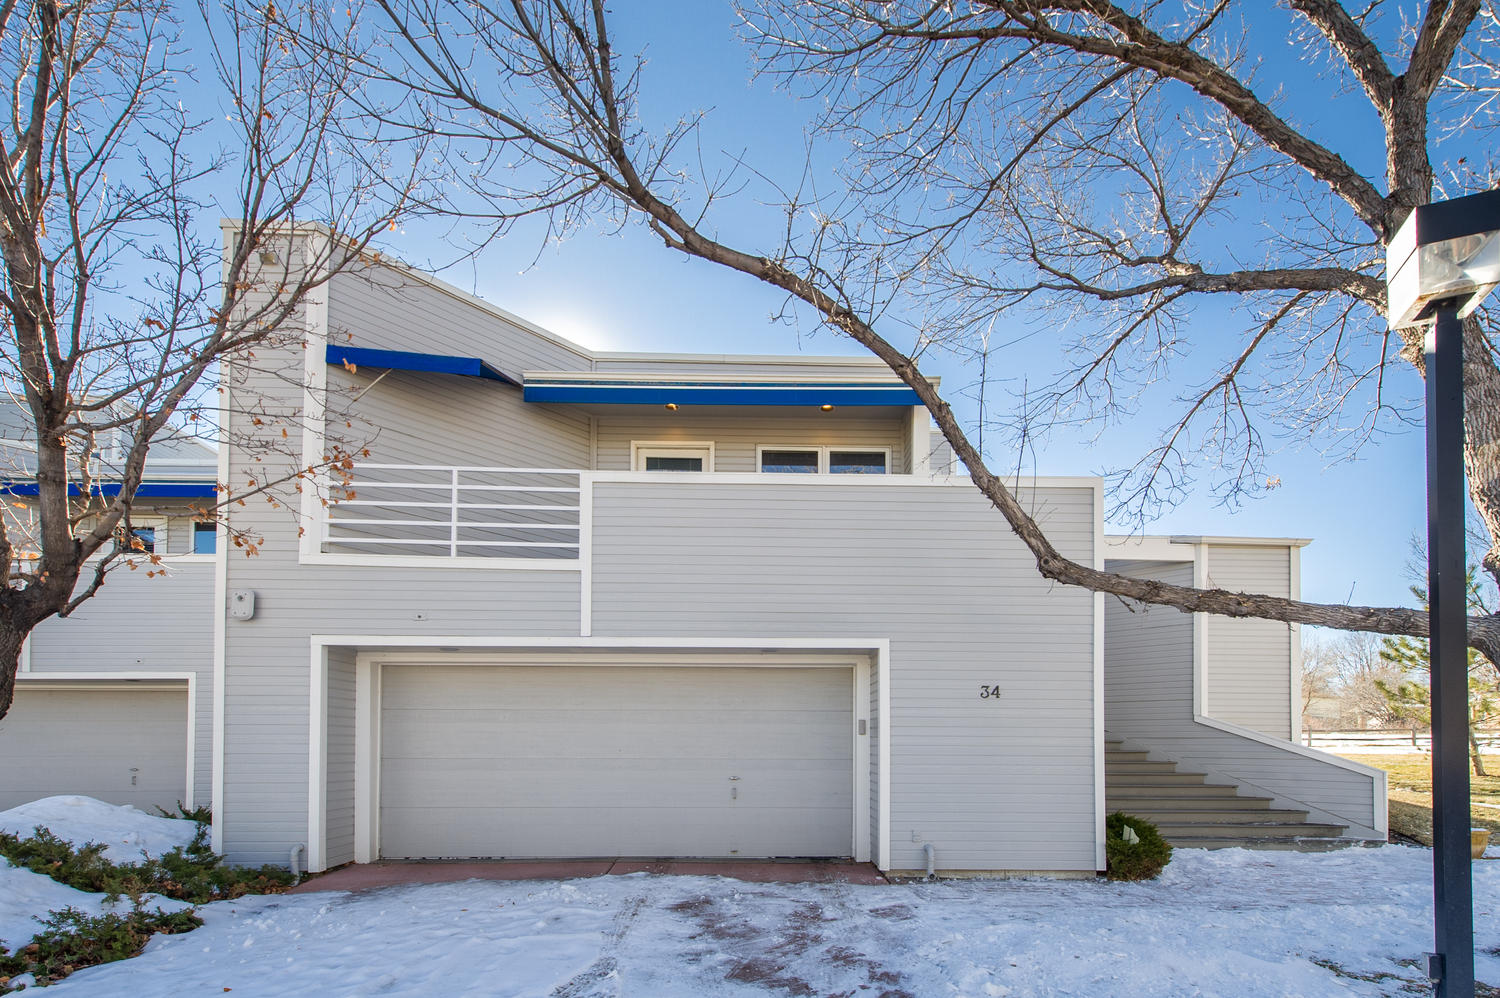 Condominium for Sale at 9200 East Cherry Creek South Drive #34 Denver, Colorado 80231 United States